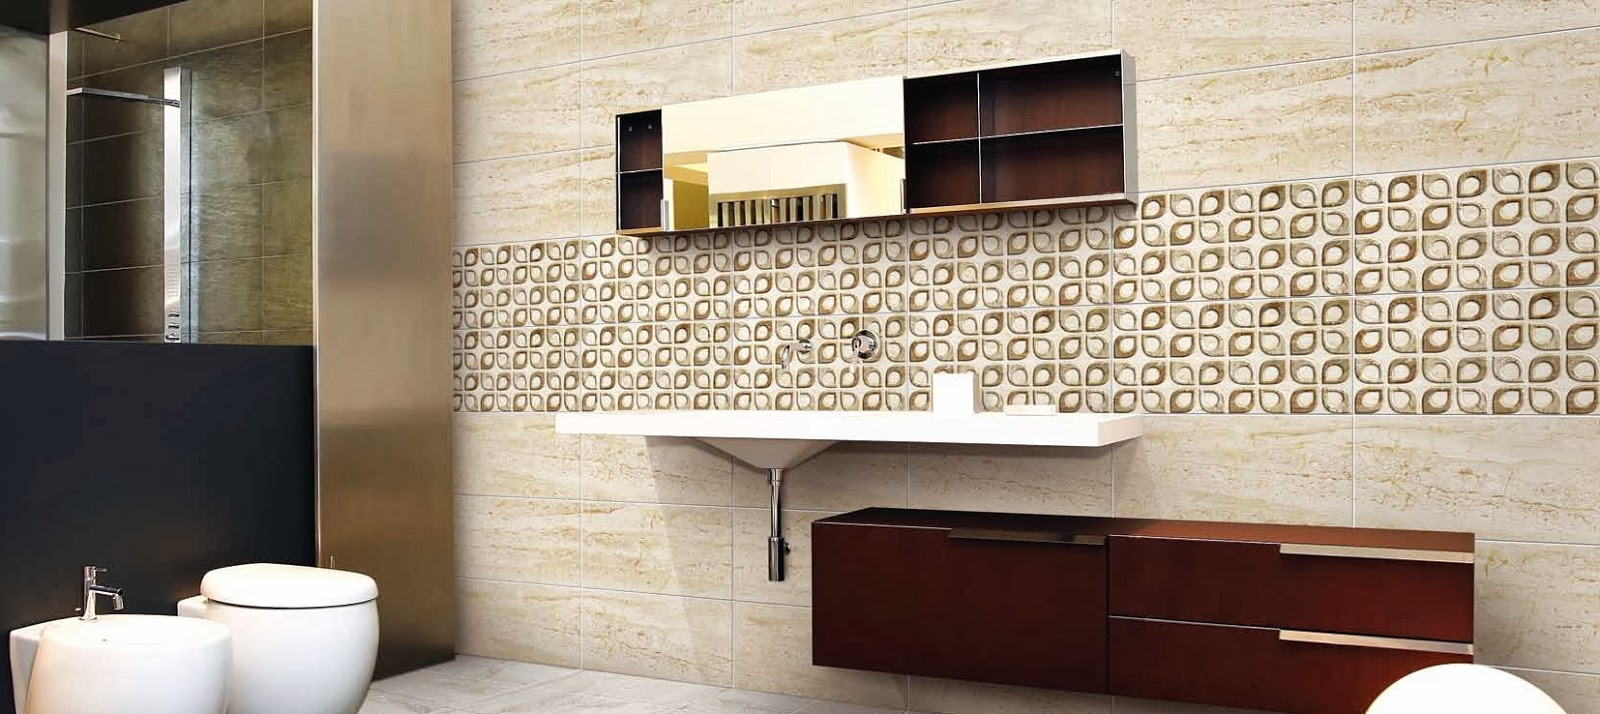 Simple 70 bathroom tiles johnson india inspiration of johnson bathroom tiles johnson india beautiful bathroom tiles johnson marbonite endura exclusive doublecrazyfo Image collections